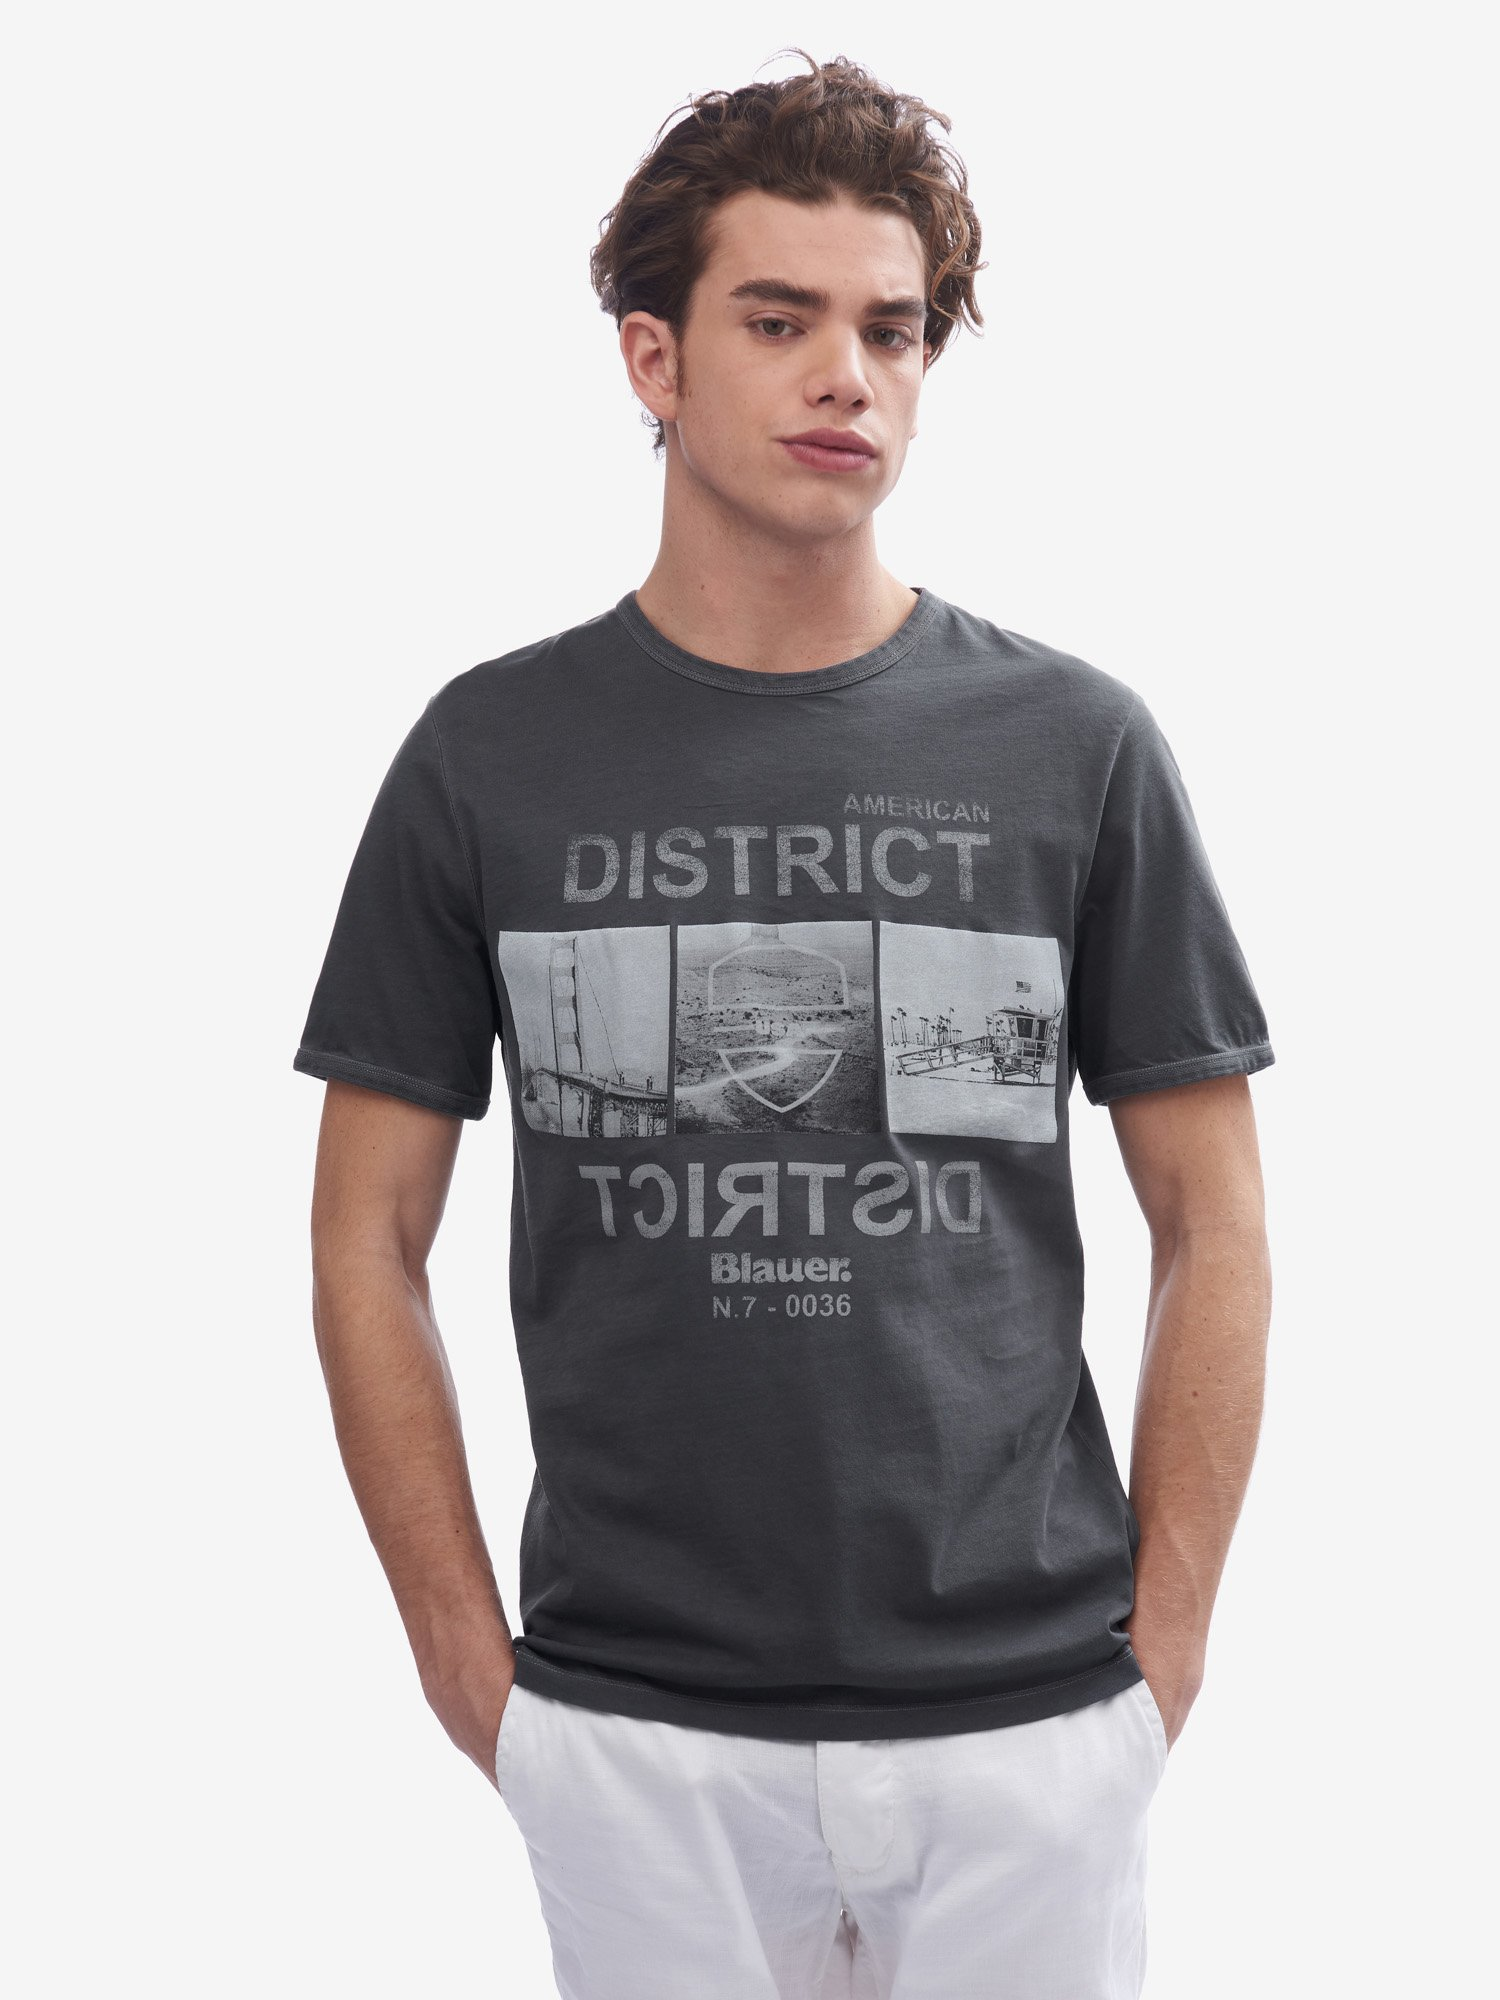 CAMISETA AMERICAN DISTRICT - Blauer